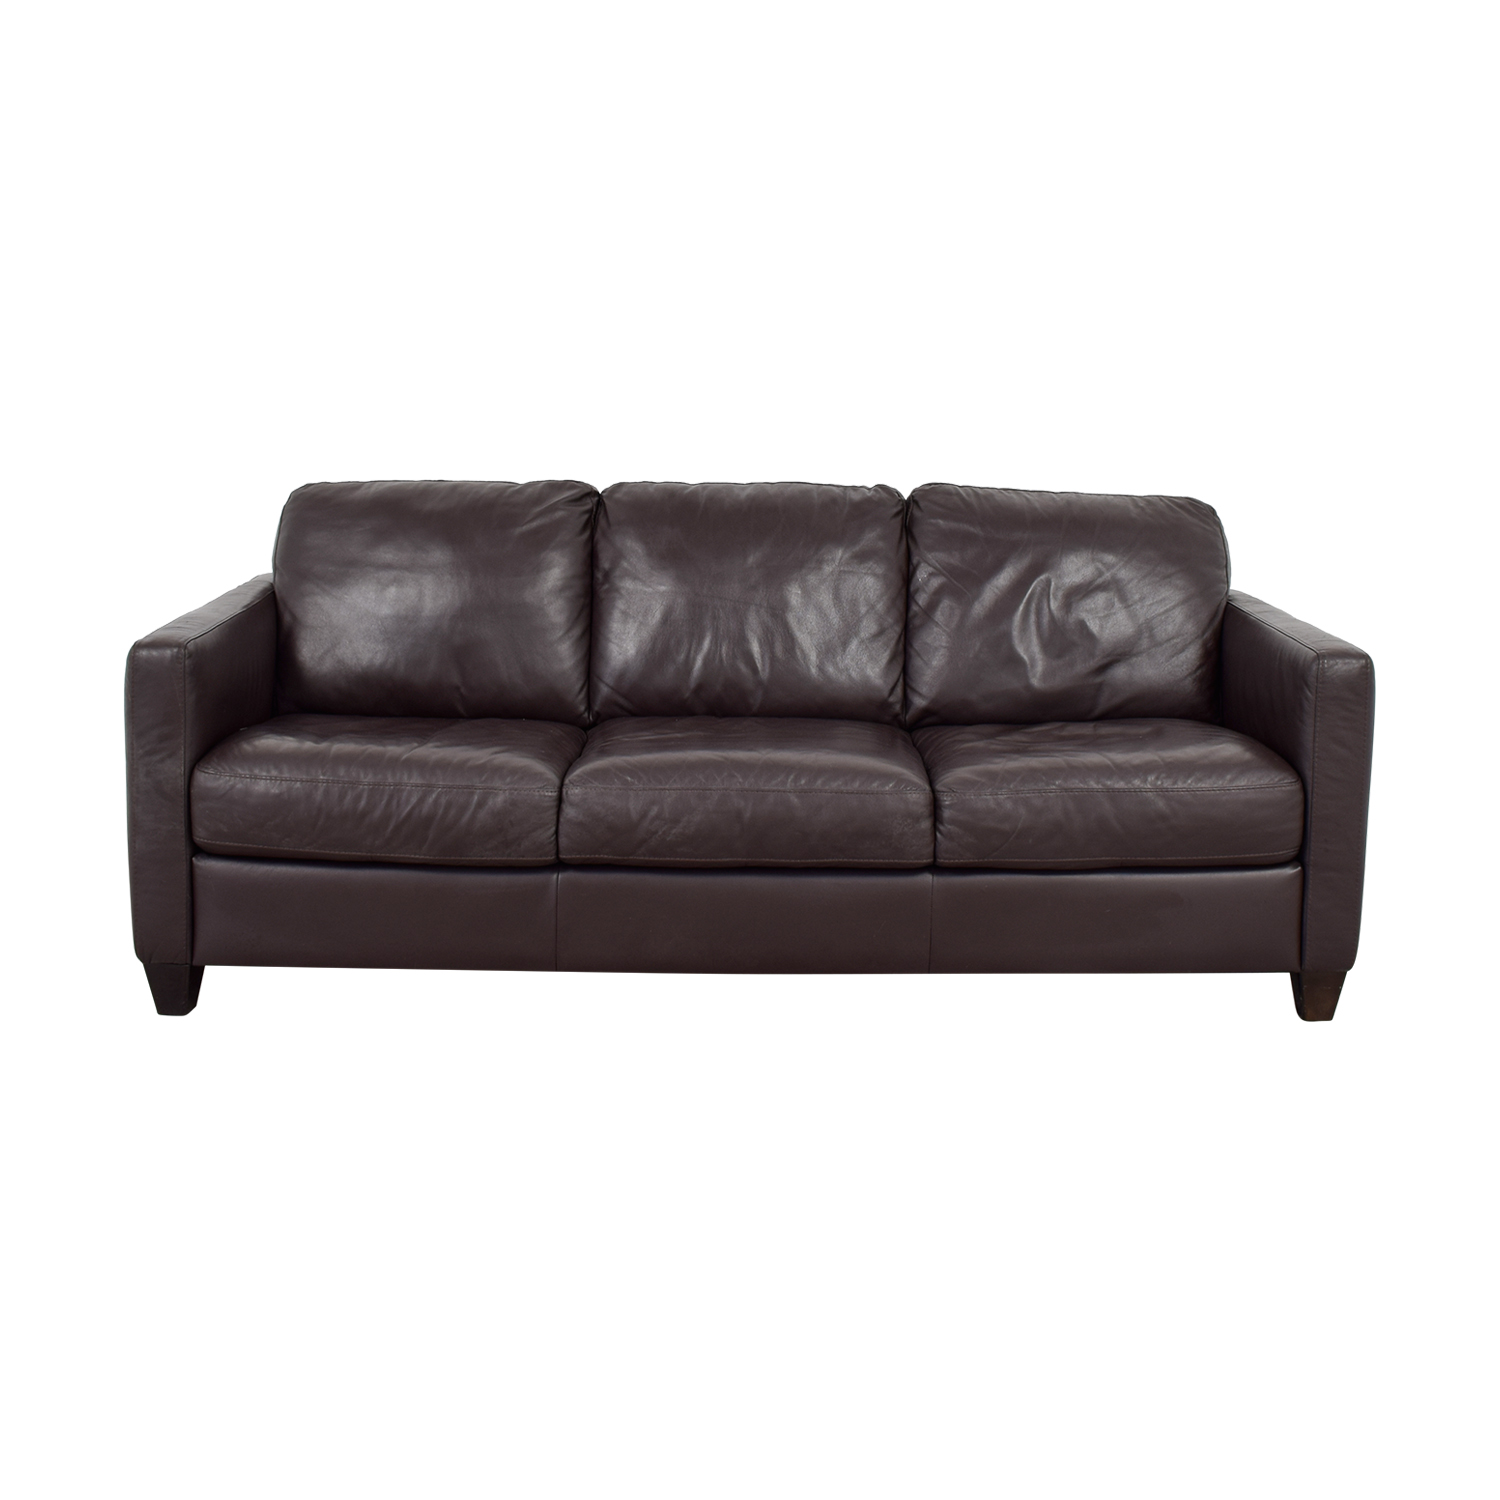 pictures of sofas karlstad corner sofa green 79 off natuzzi brown leather three cushion